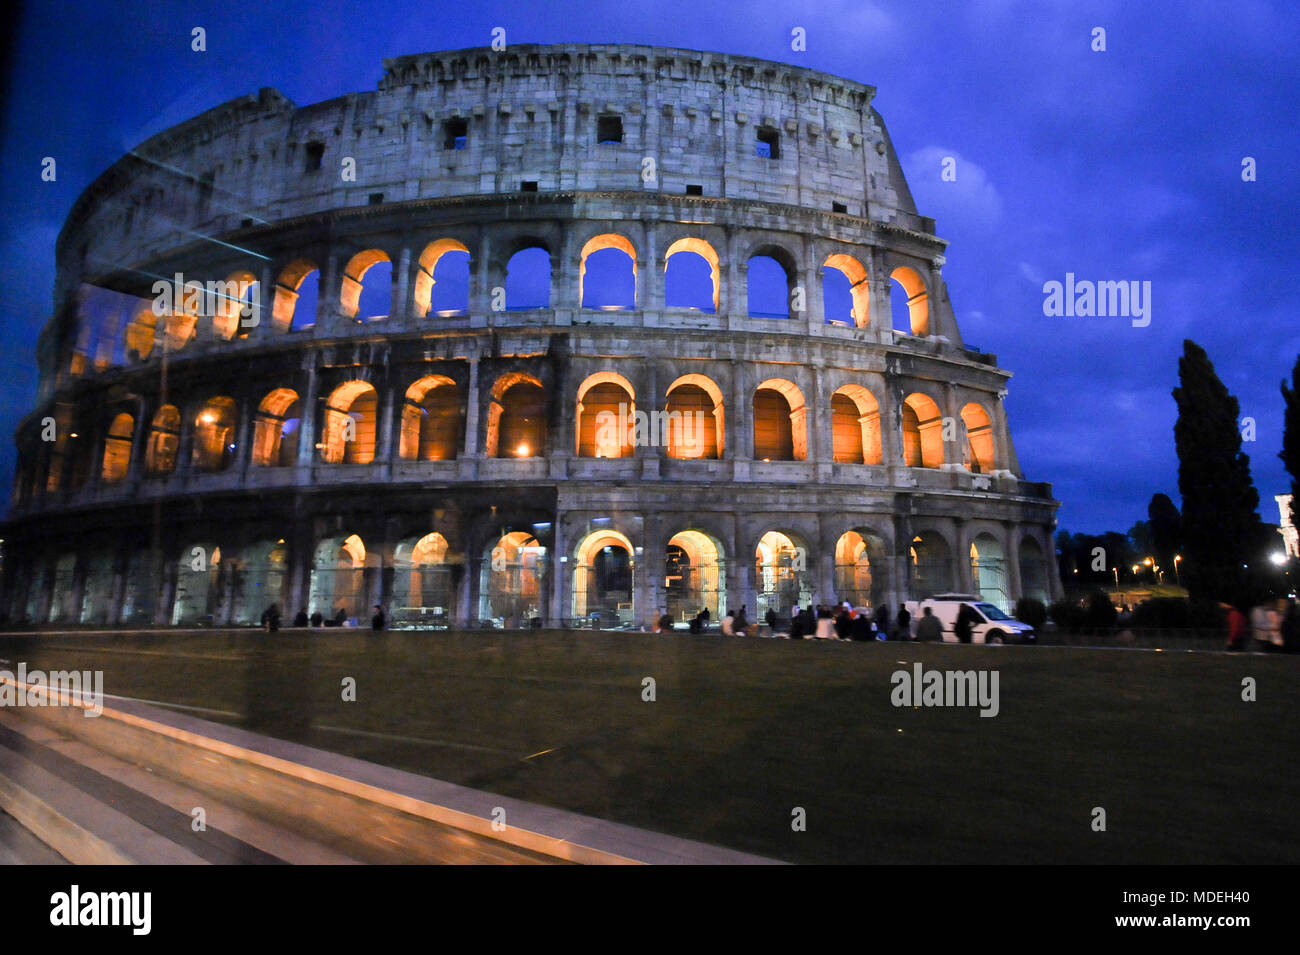 Colosseo (Colosseum) in Historic Centre of Rome listed World Heritage by UNESCO in Rome, Italy. May 1st 2011 © Wojciech Strozyk / Alamy Stock Photo Stock Photo